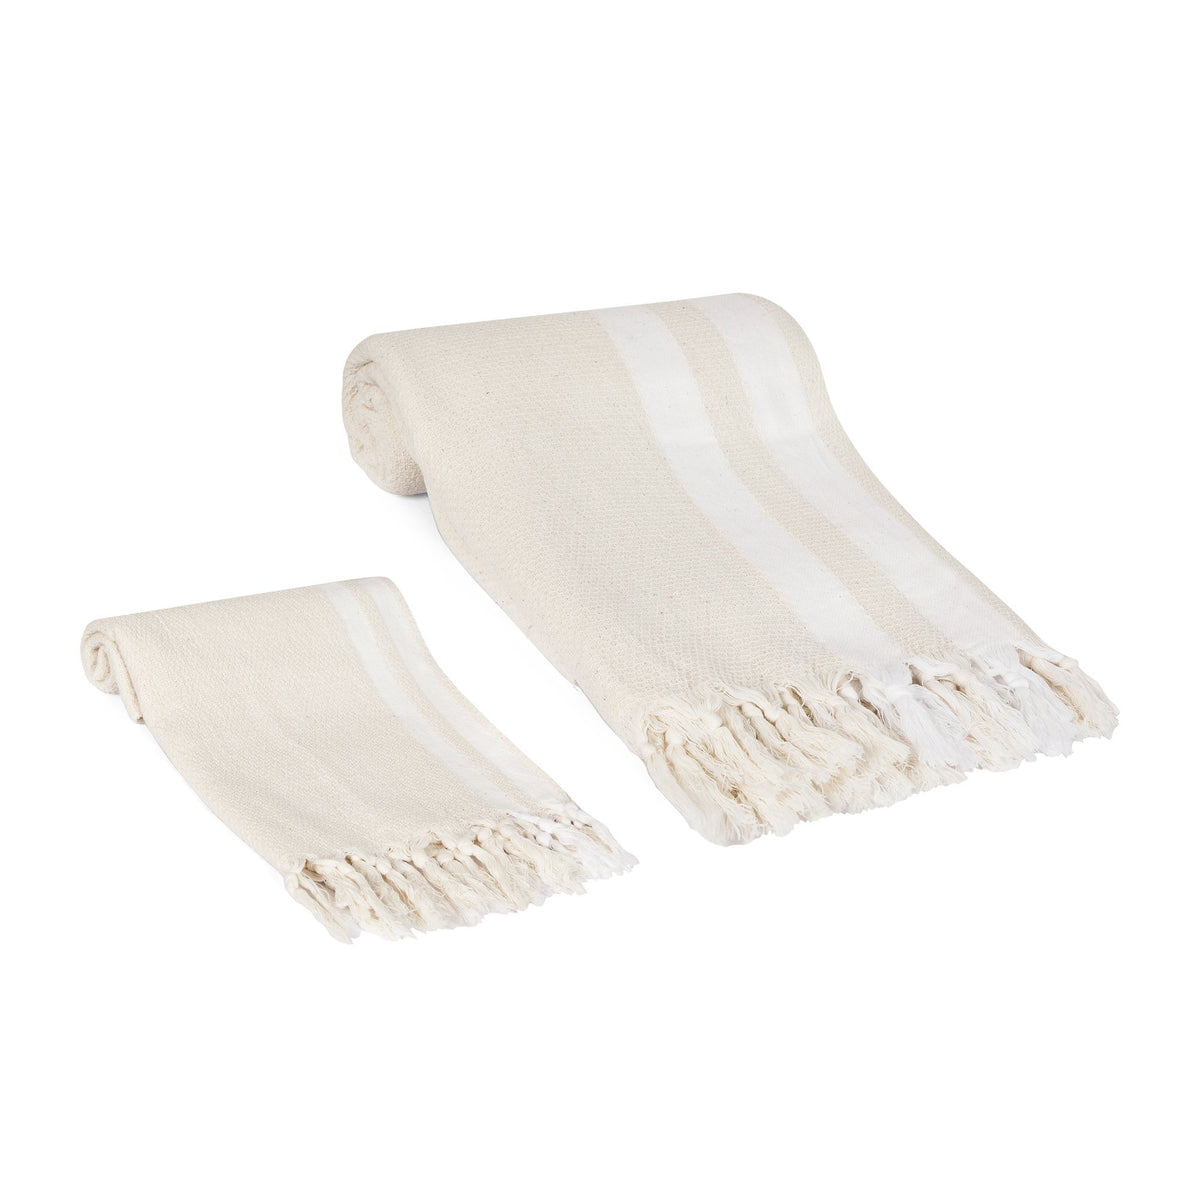 Pamuk Natural Turkish Towel Bundle